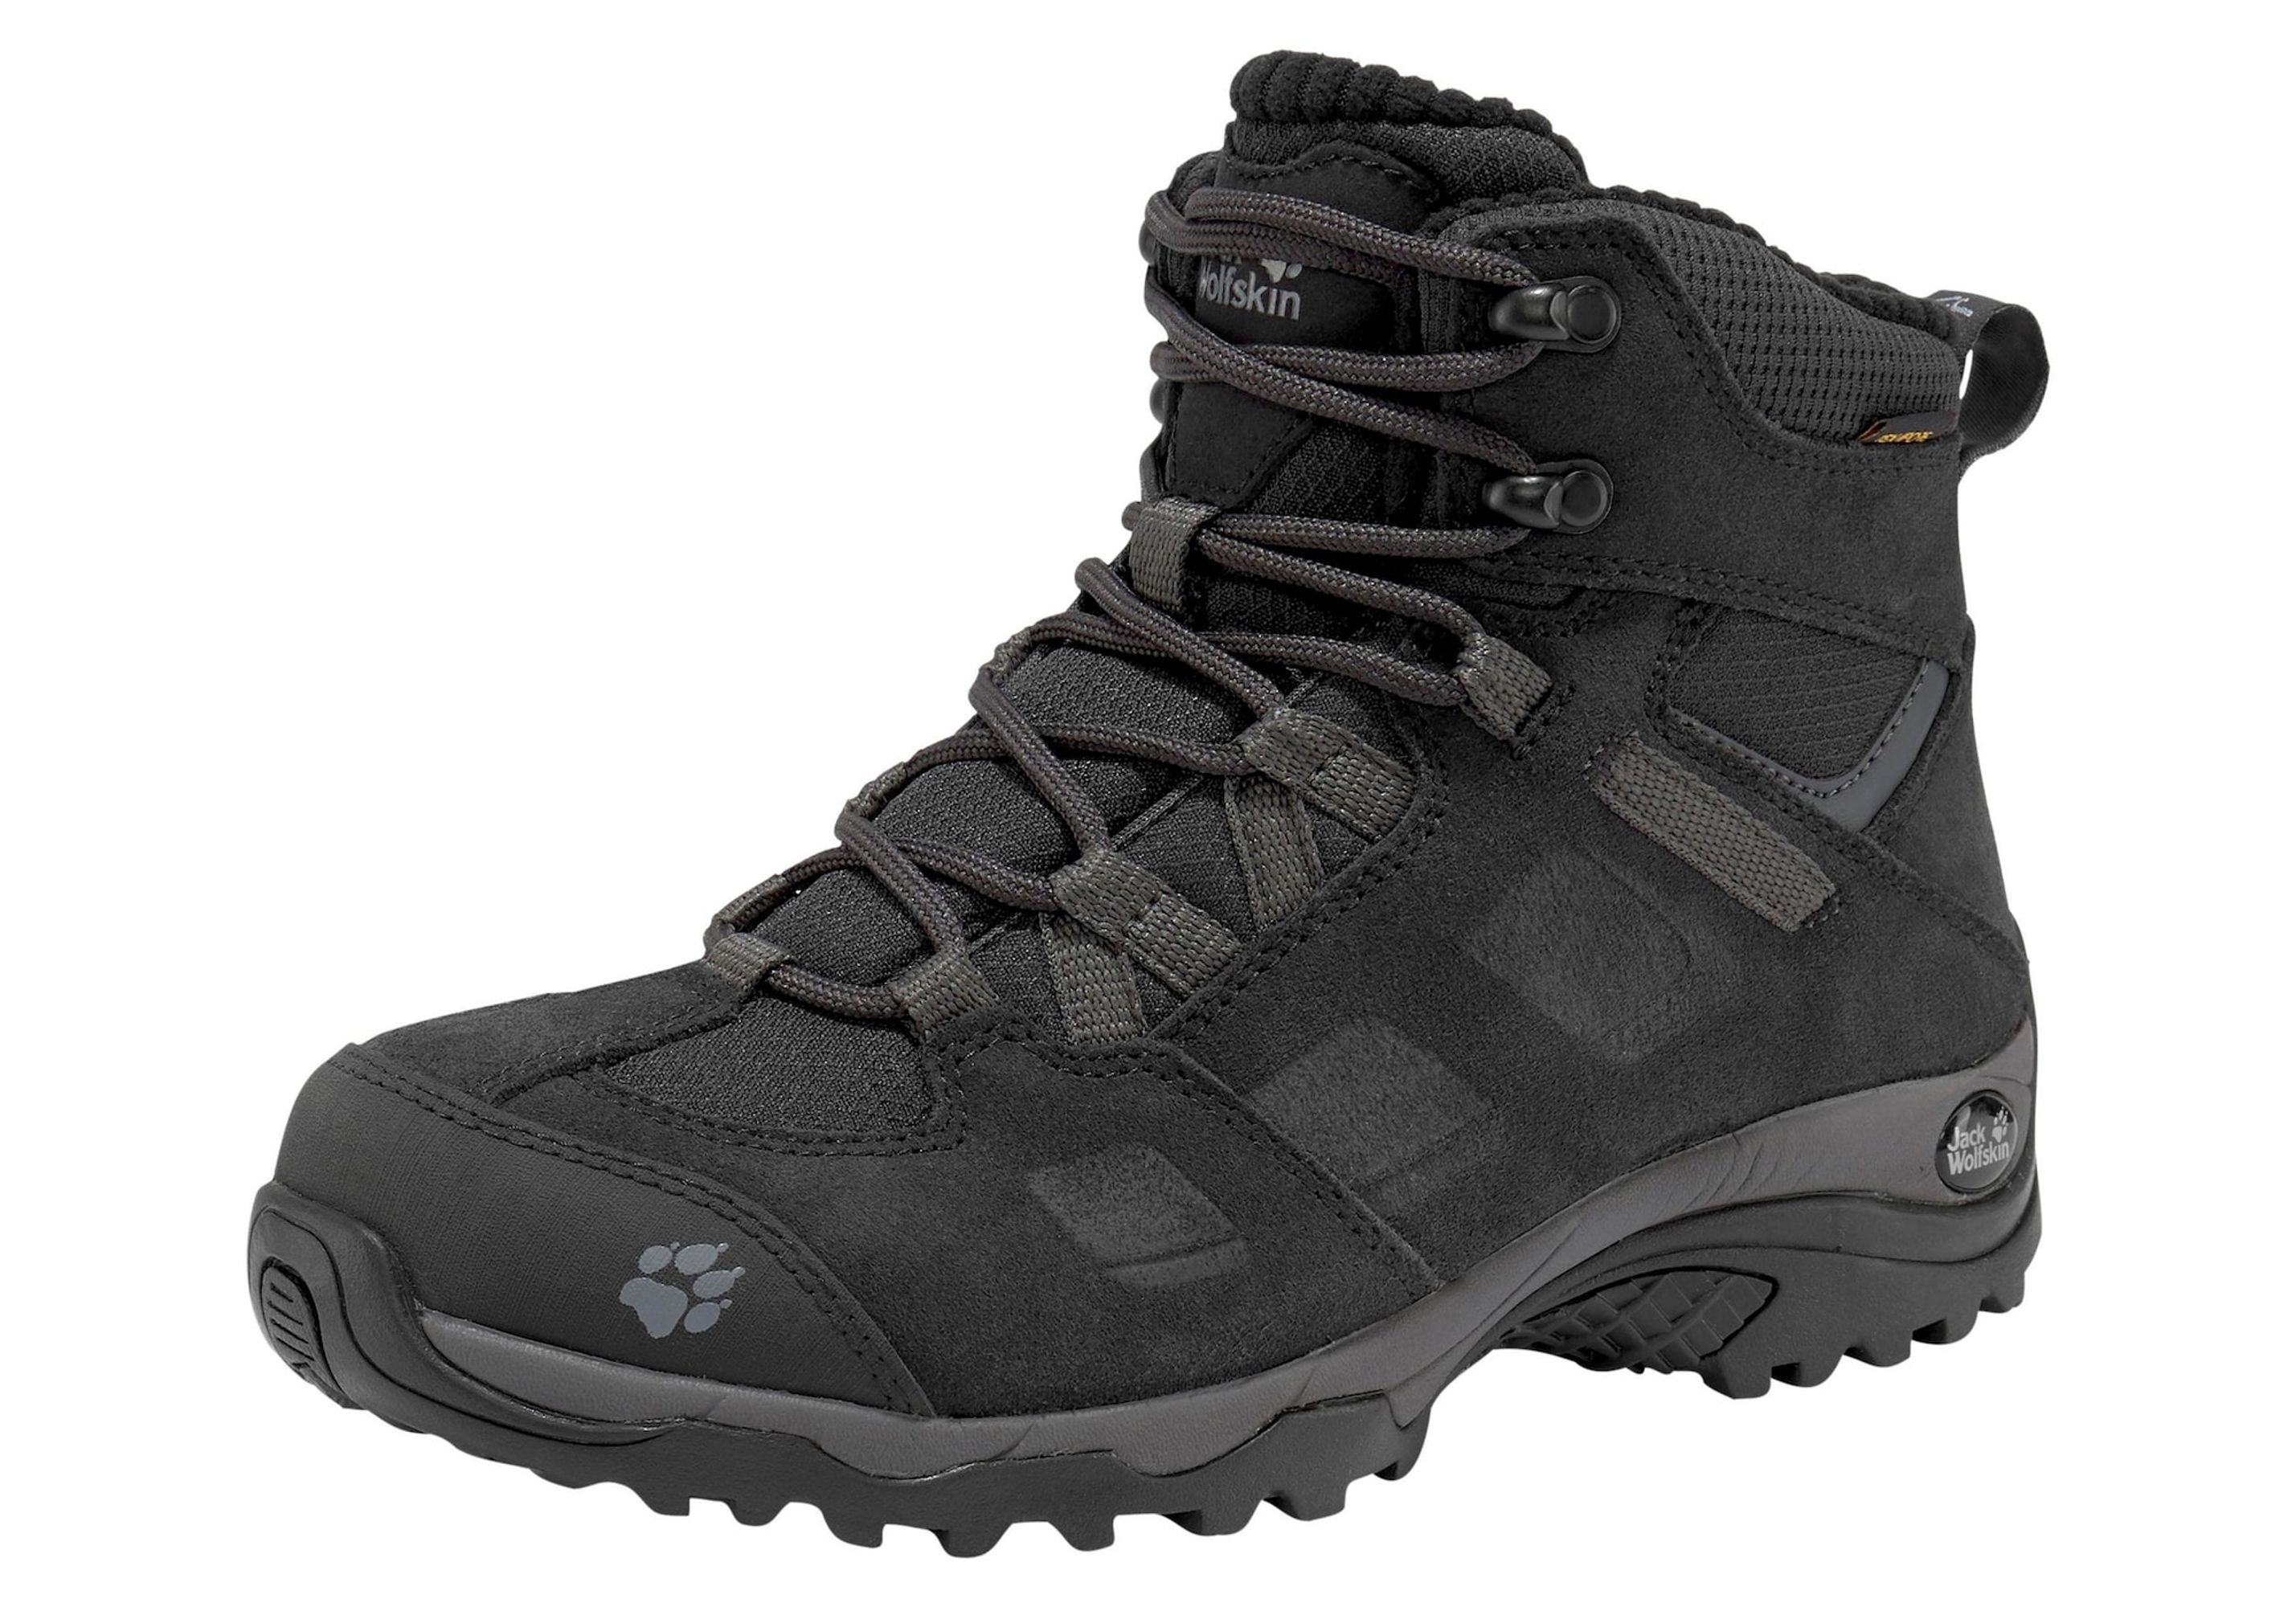 Outdoorwinterstiefel ´Vojo Hike 2 winterized Texapore Mid´